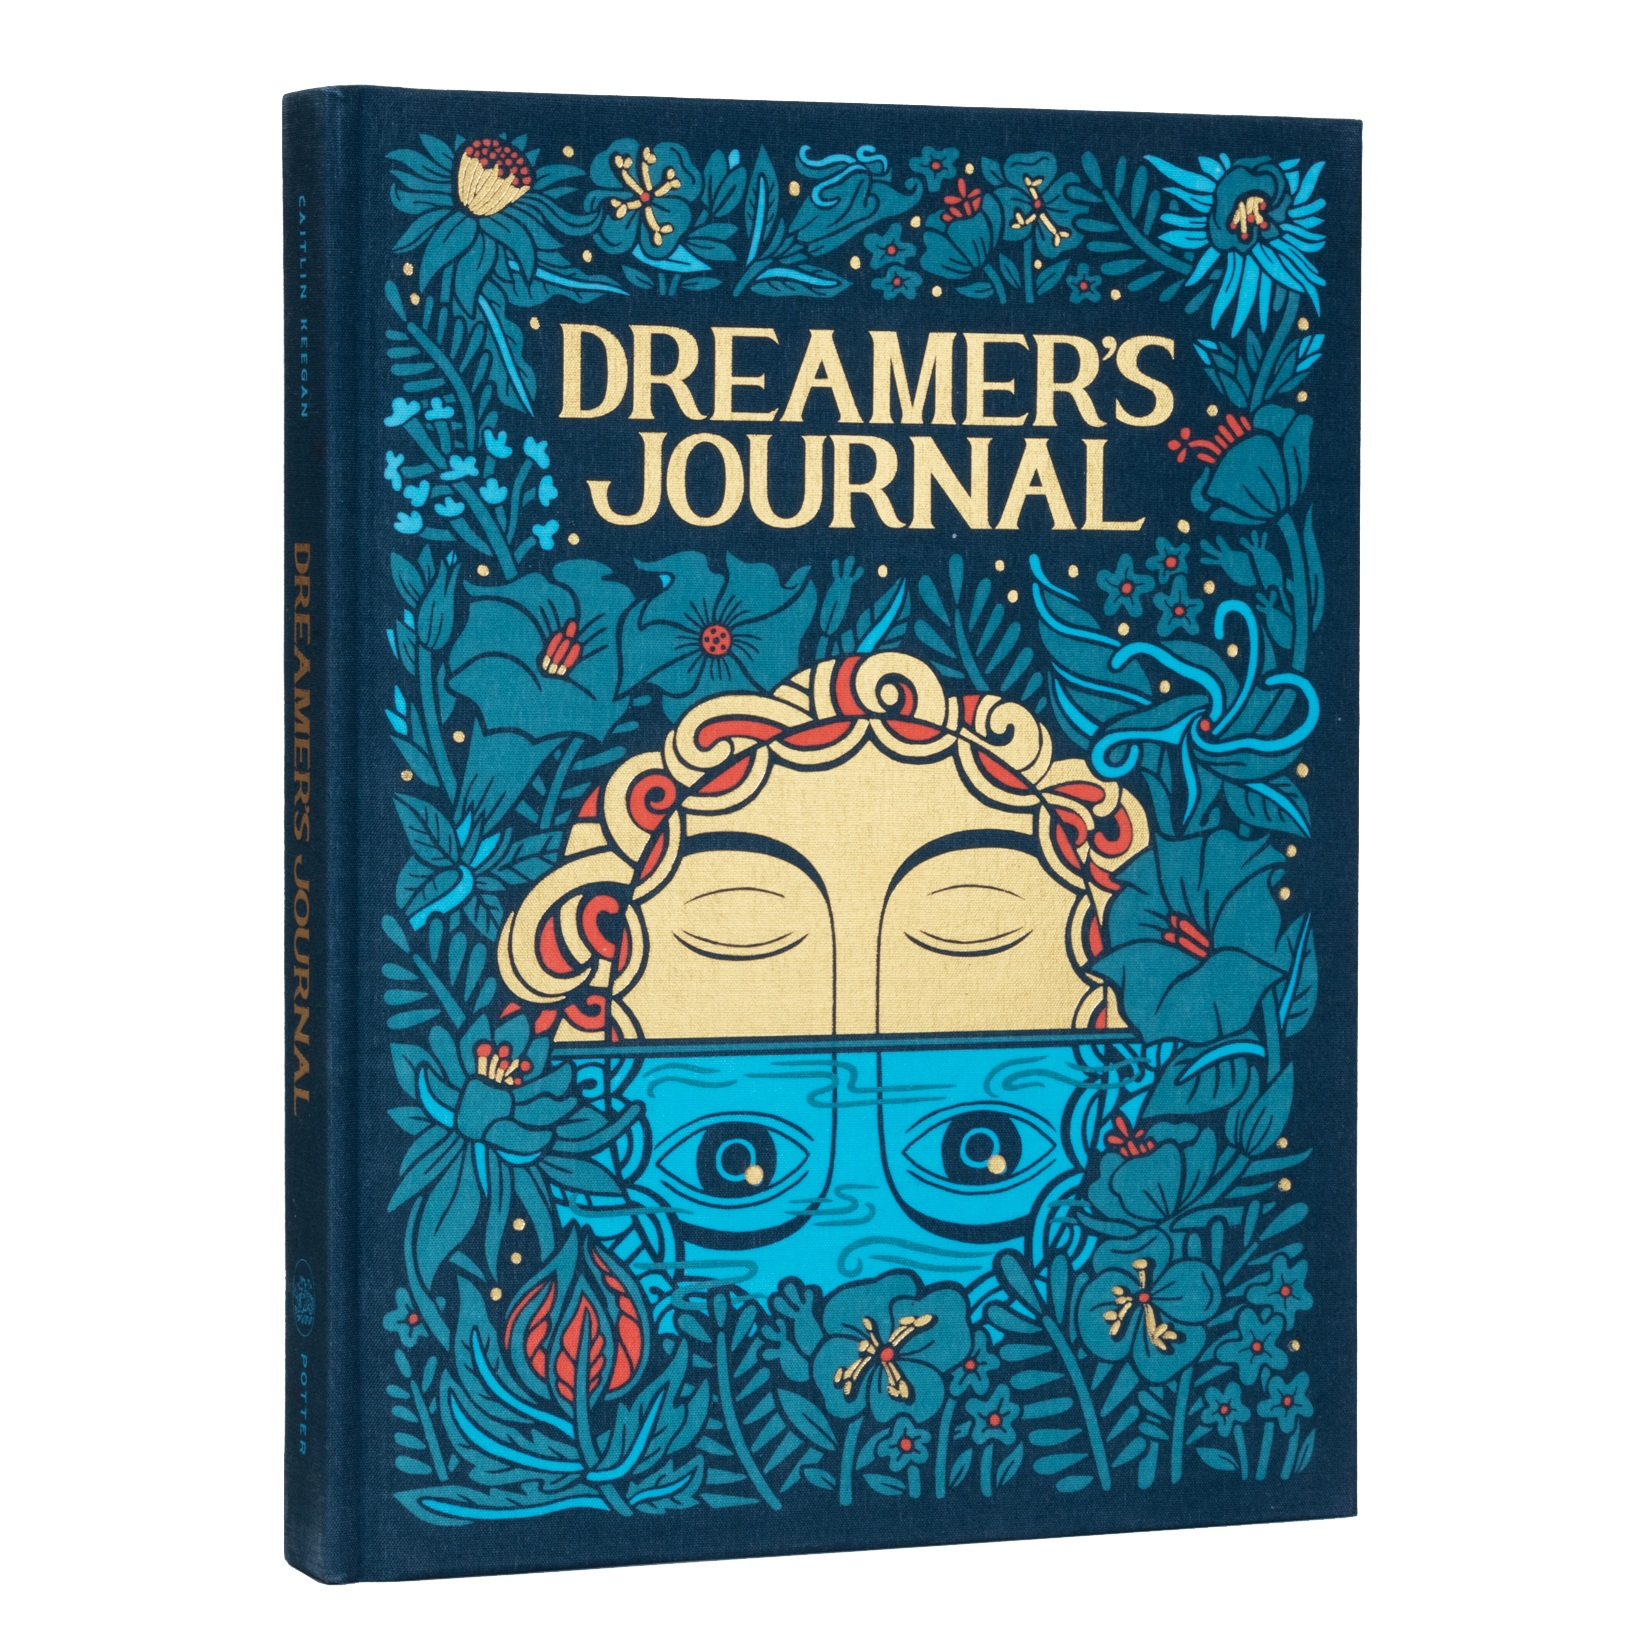 Dreamer%27s+journal_Upright_105.jpg